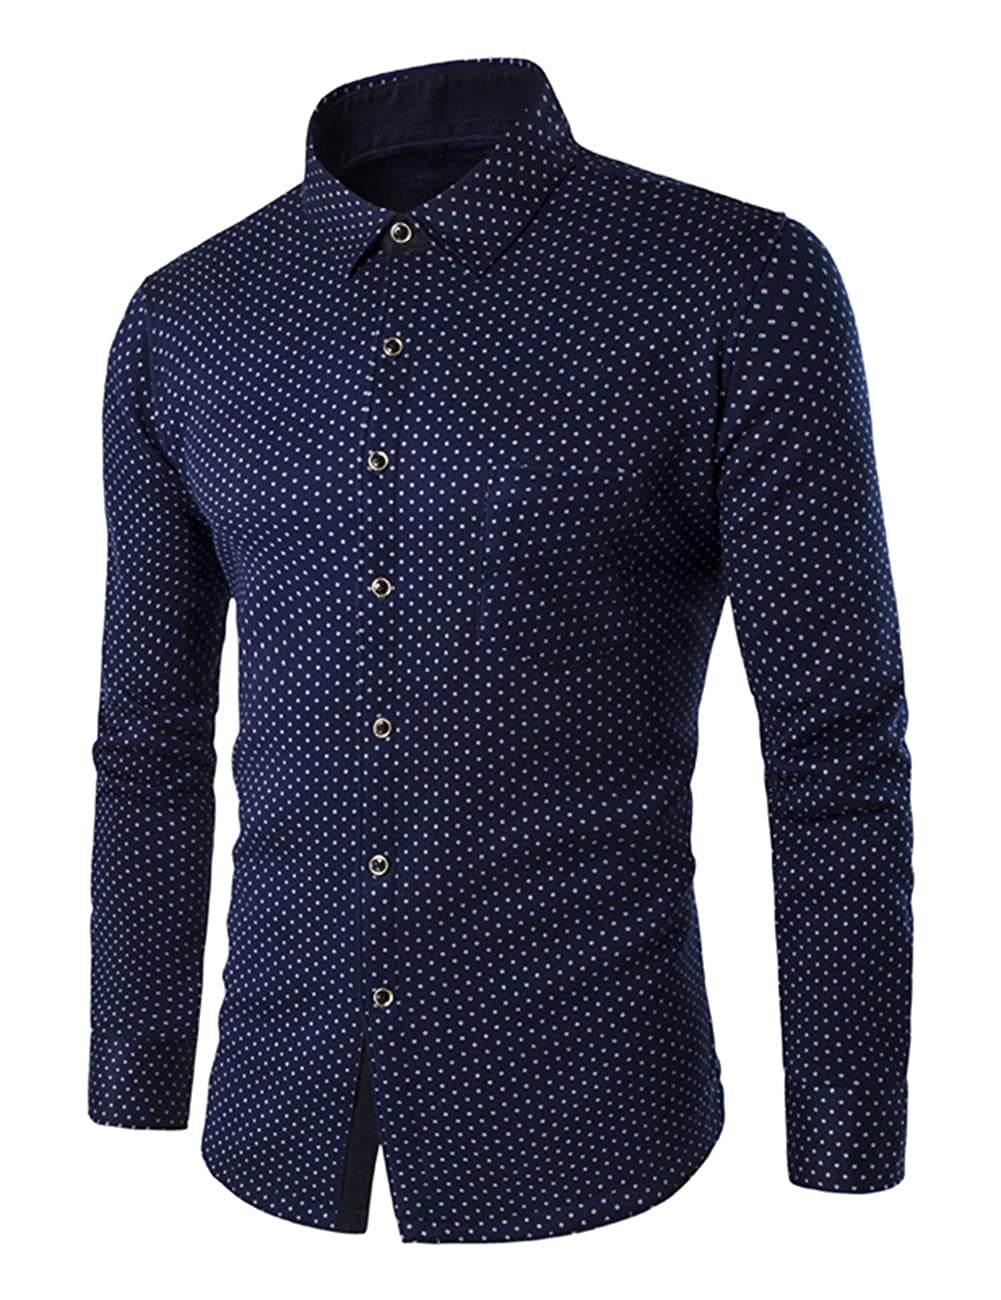 BU2H Men Long Sleeve Geometric Thin Stylish Button up Dress Shirts